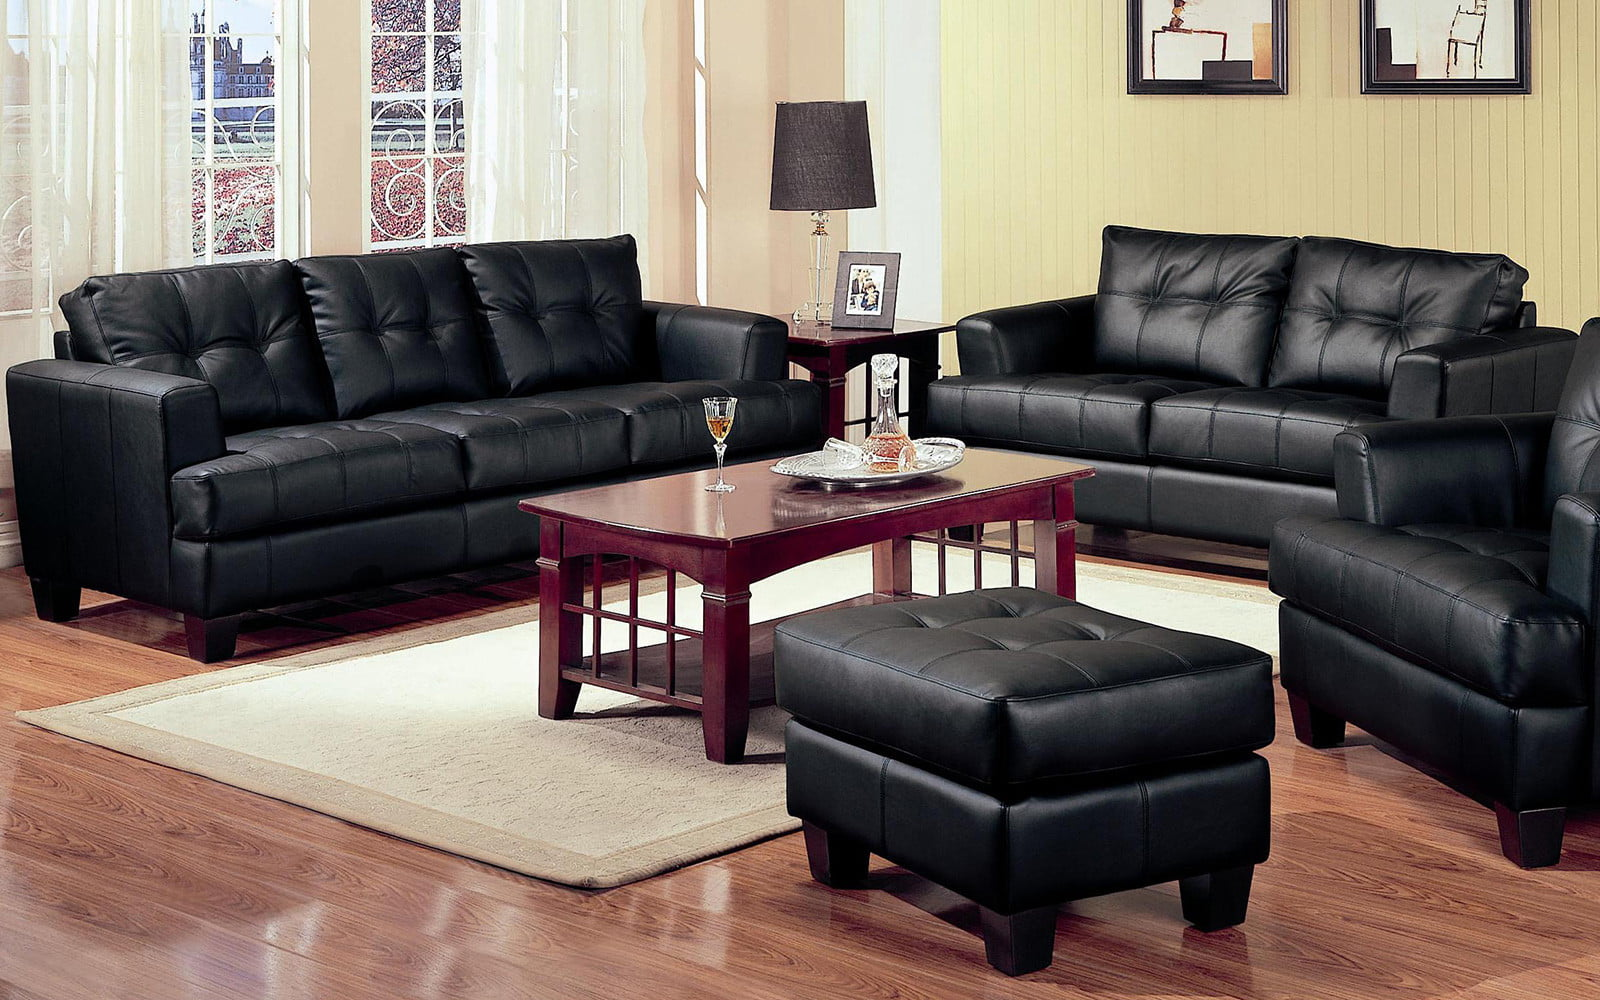 2 piece modern black bonded leather sofa and loveseat livingroom set walmartcom - Black Leather Loveseat